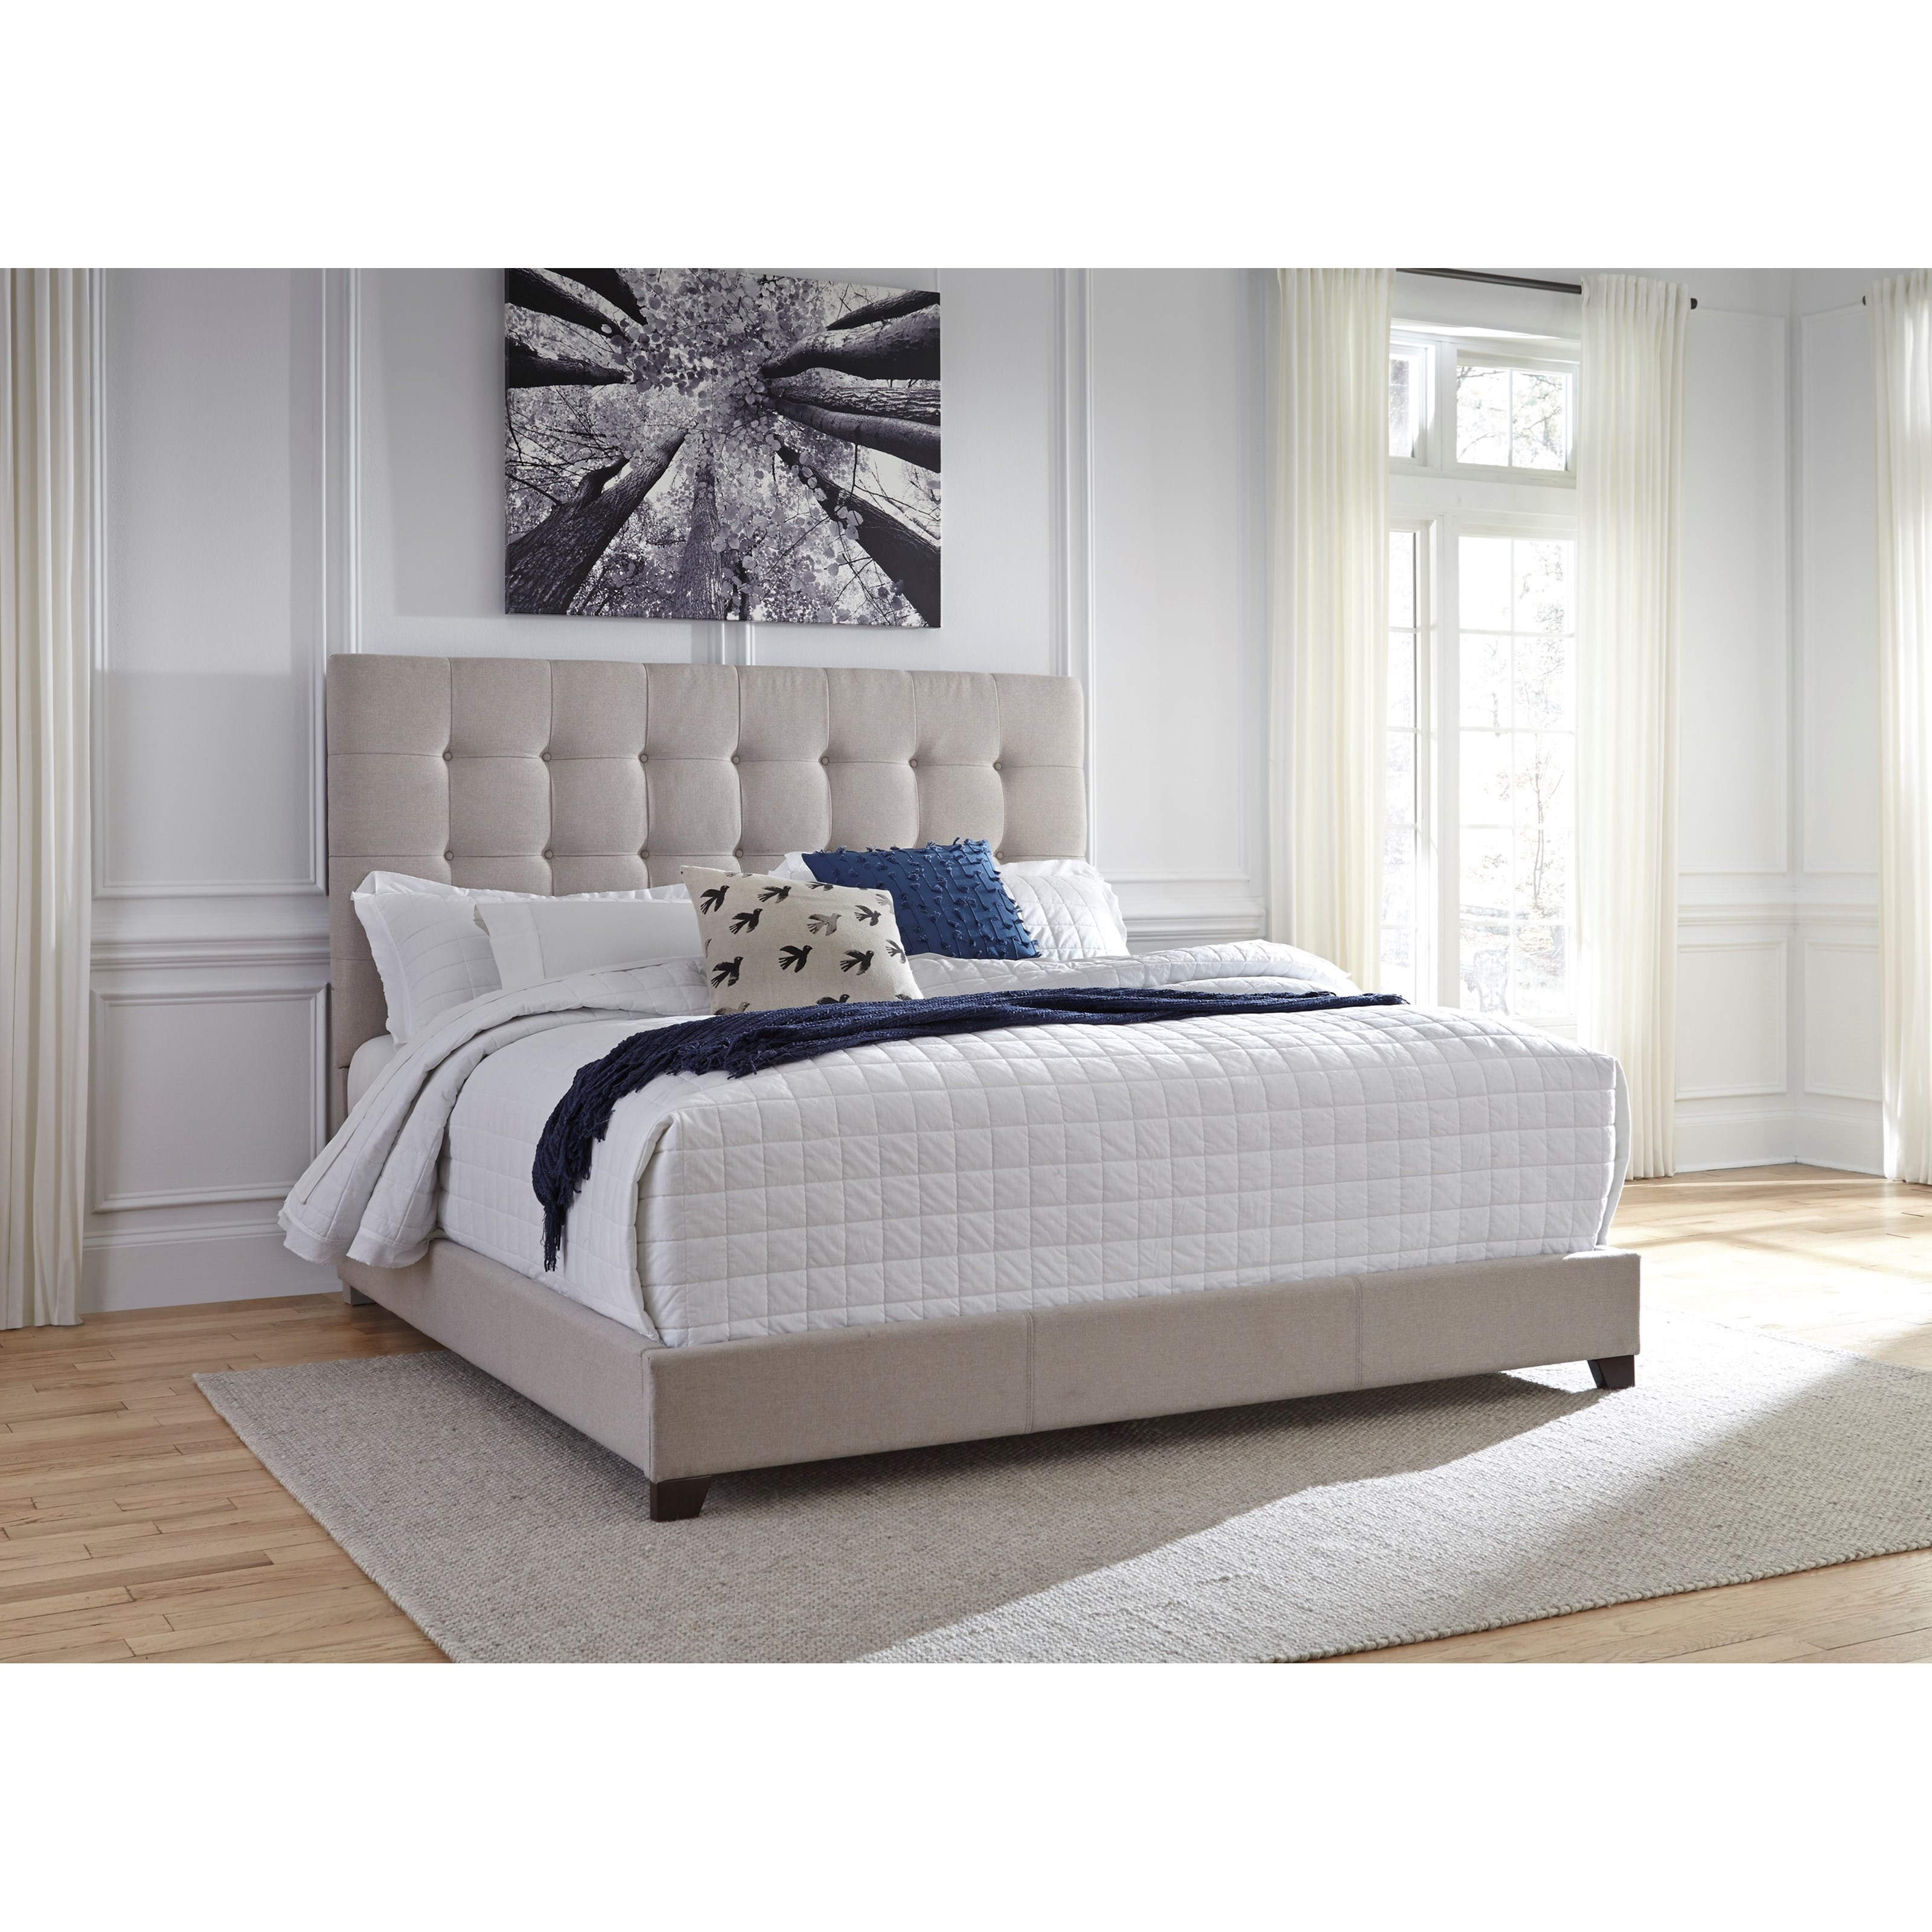 Ashley Furniture Beds: Signature Design By Ashley Dolante Queen Upholstered Bed W